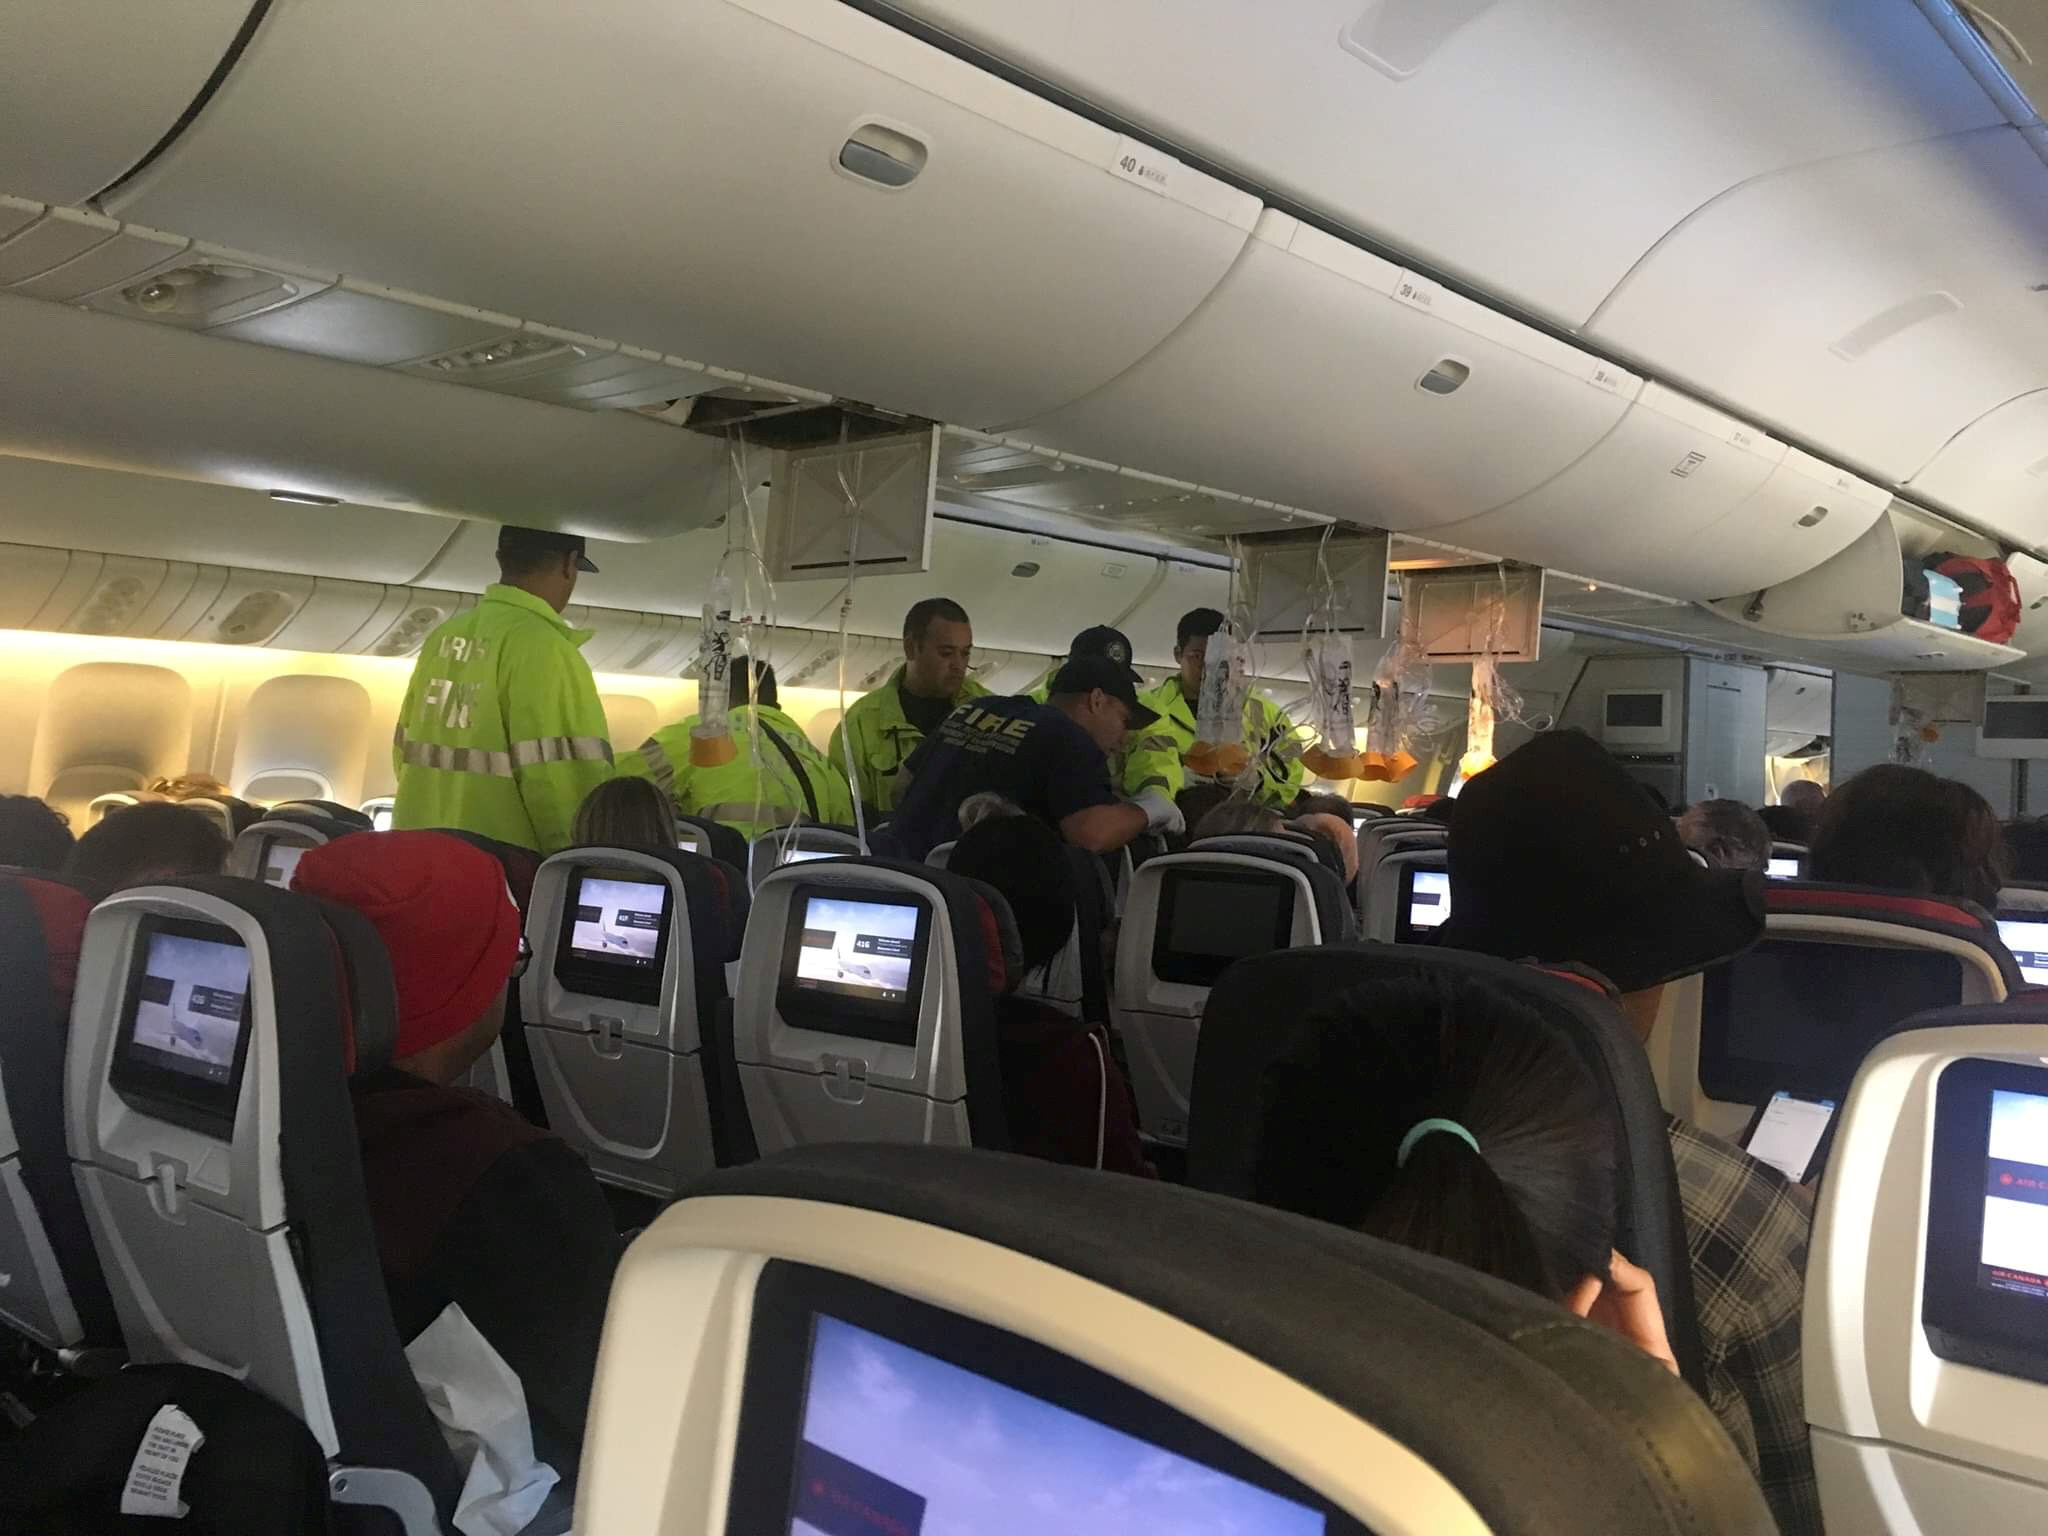 Turbulence injures 37, forces Air Canada flight to land in